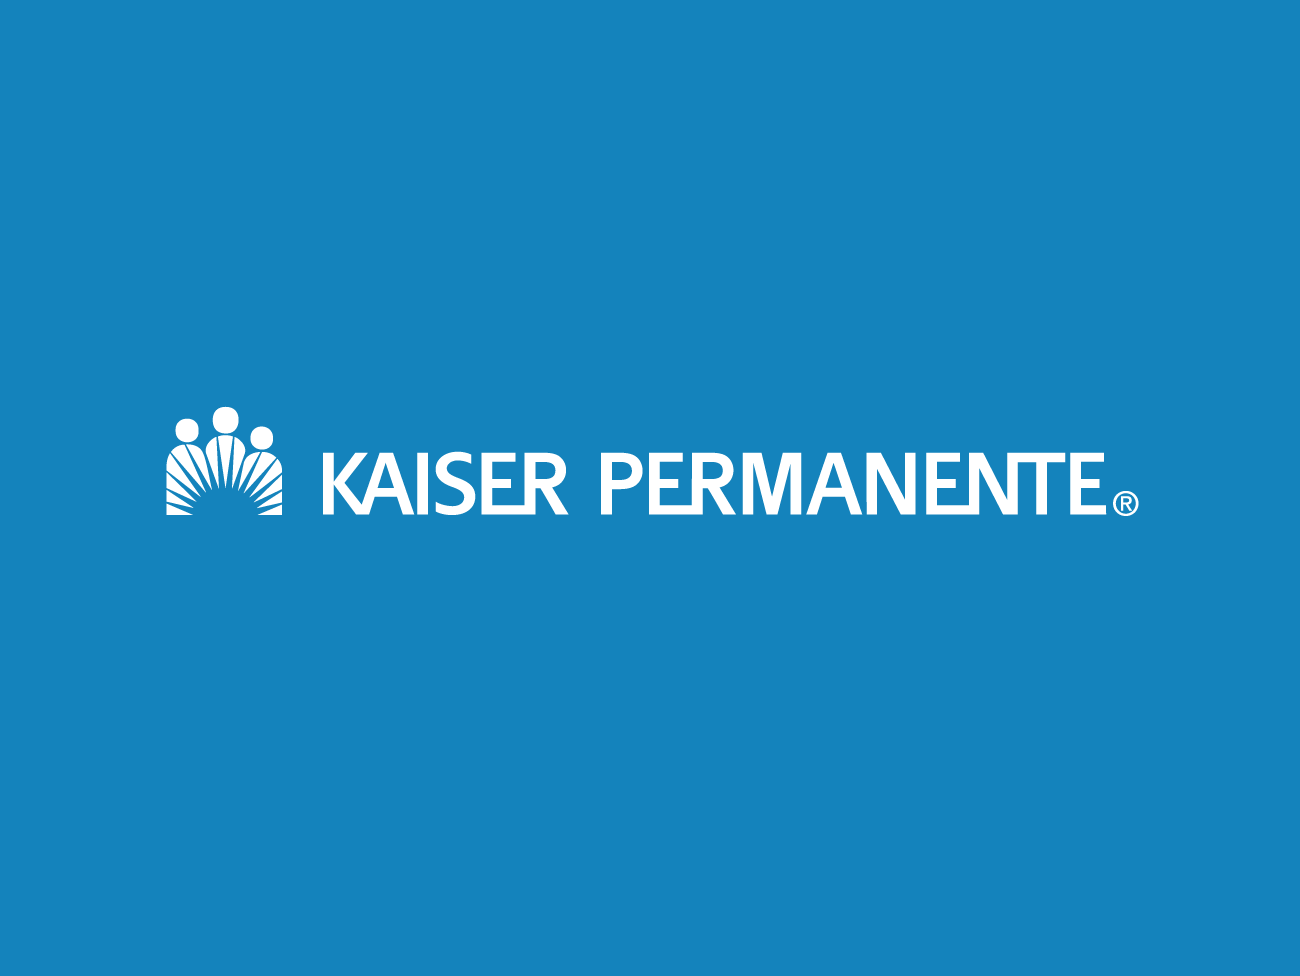 White Kaiser Permanente logo on blue background.